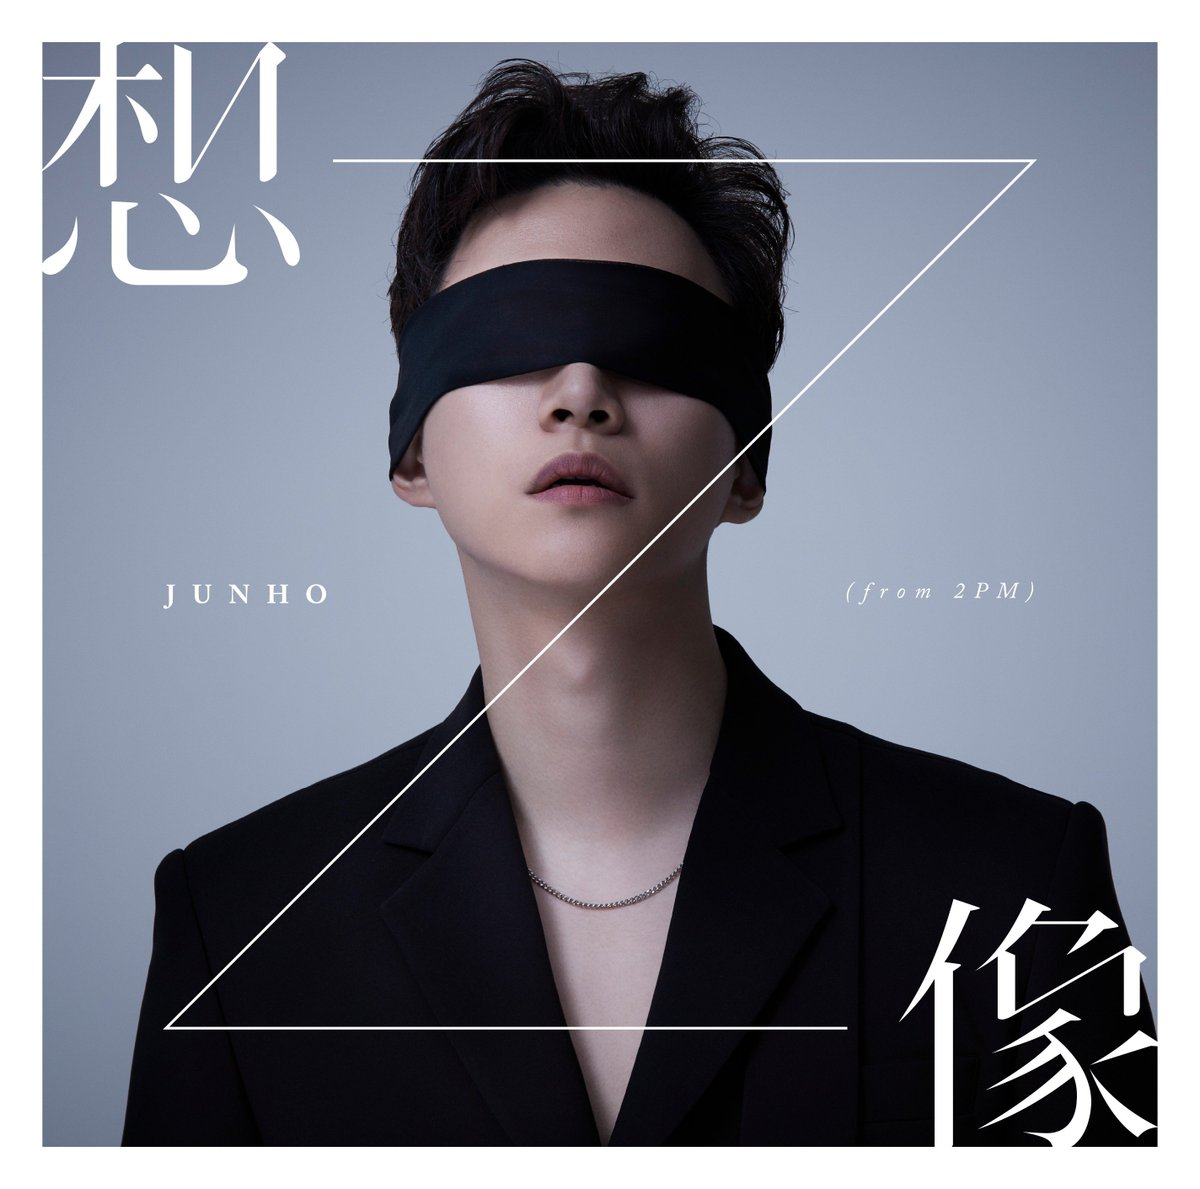 Junho ranks #1 on Oricon's Weekly Chart for the first time since solo debut https://t.co/5dHrPVABC3